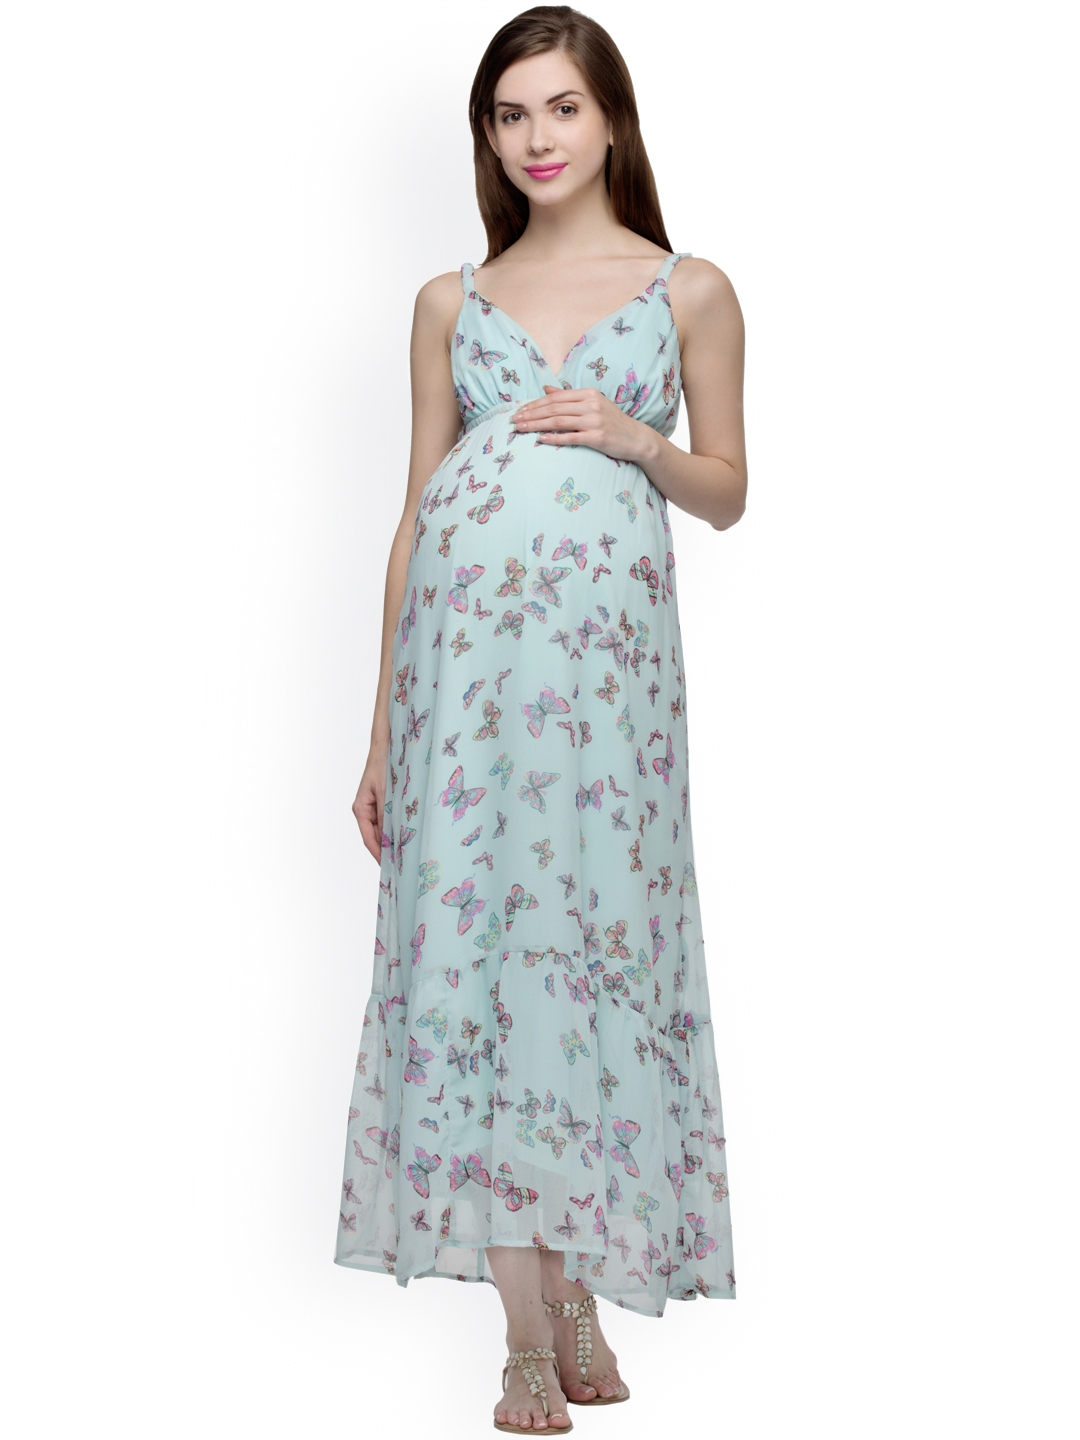 Oxolloxo maternity dresses buy oxolloxo maternity dresses online oxolloxo women blue printed maternity maxi dress ombrellifo Gallery